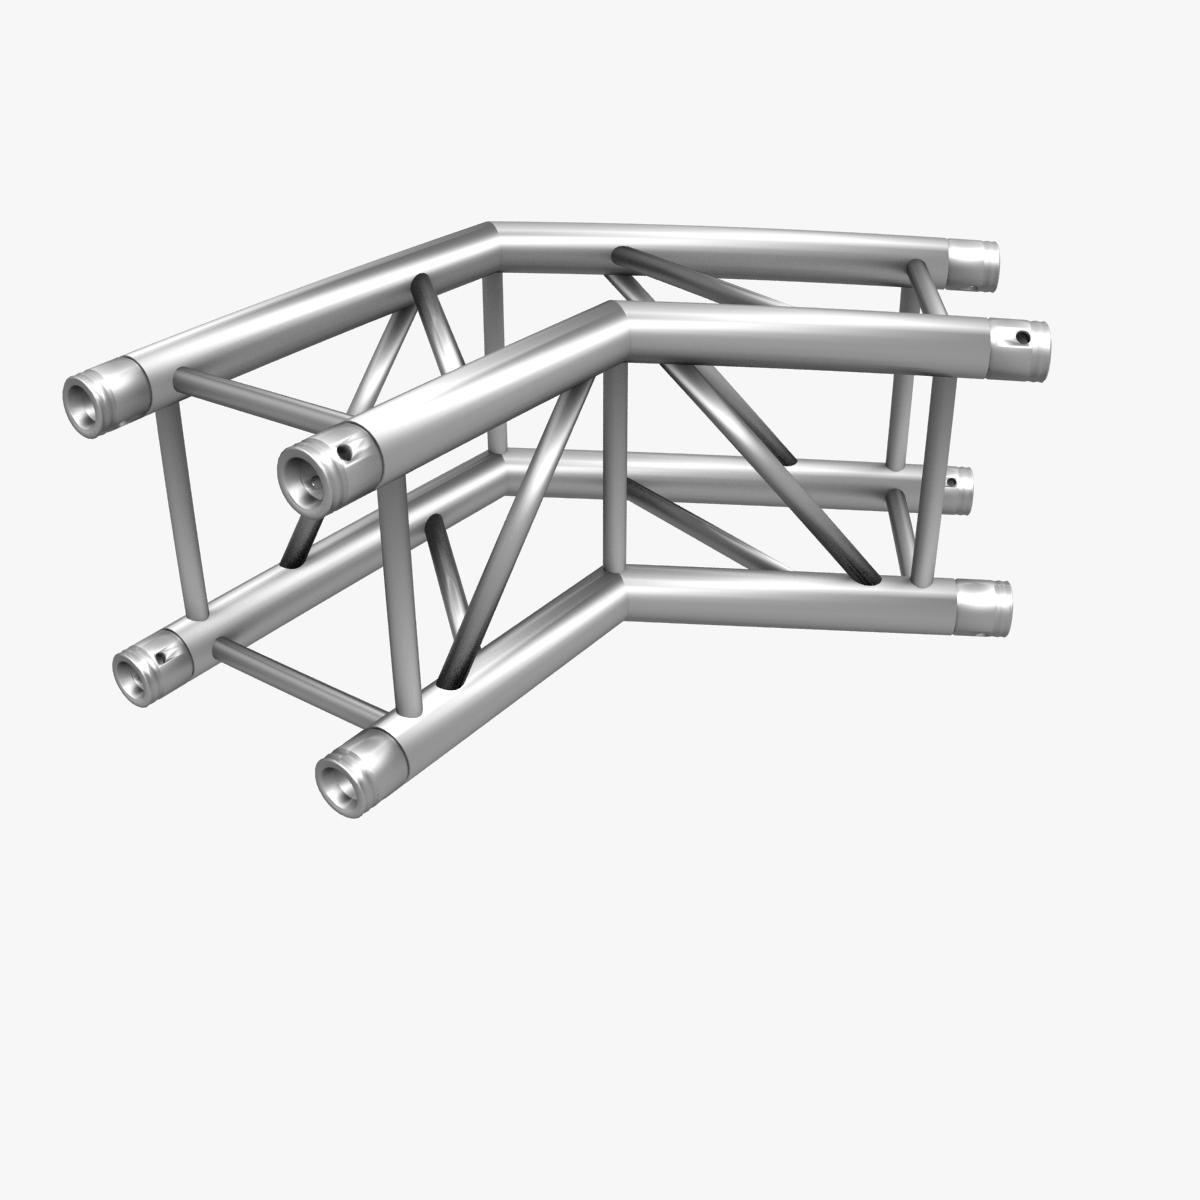 square truss standard (collection 24 modular) 3d model 3ds max dxf fbx c4d dae  texture obj 216360